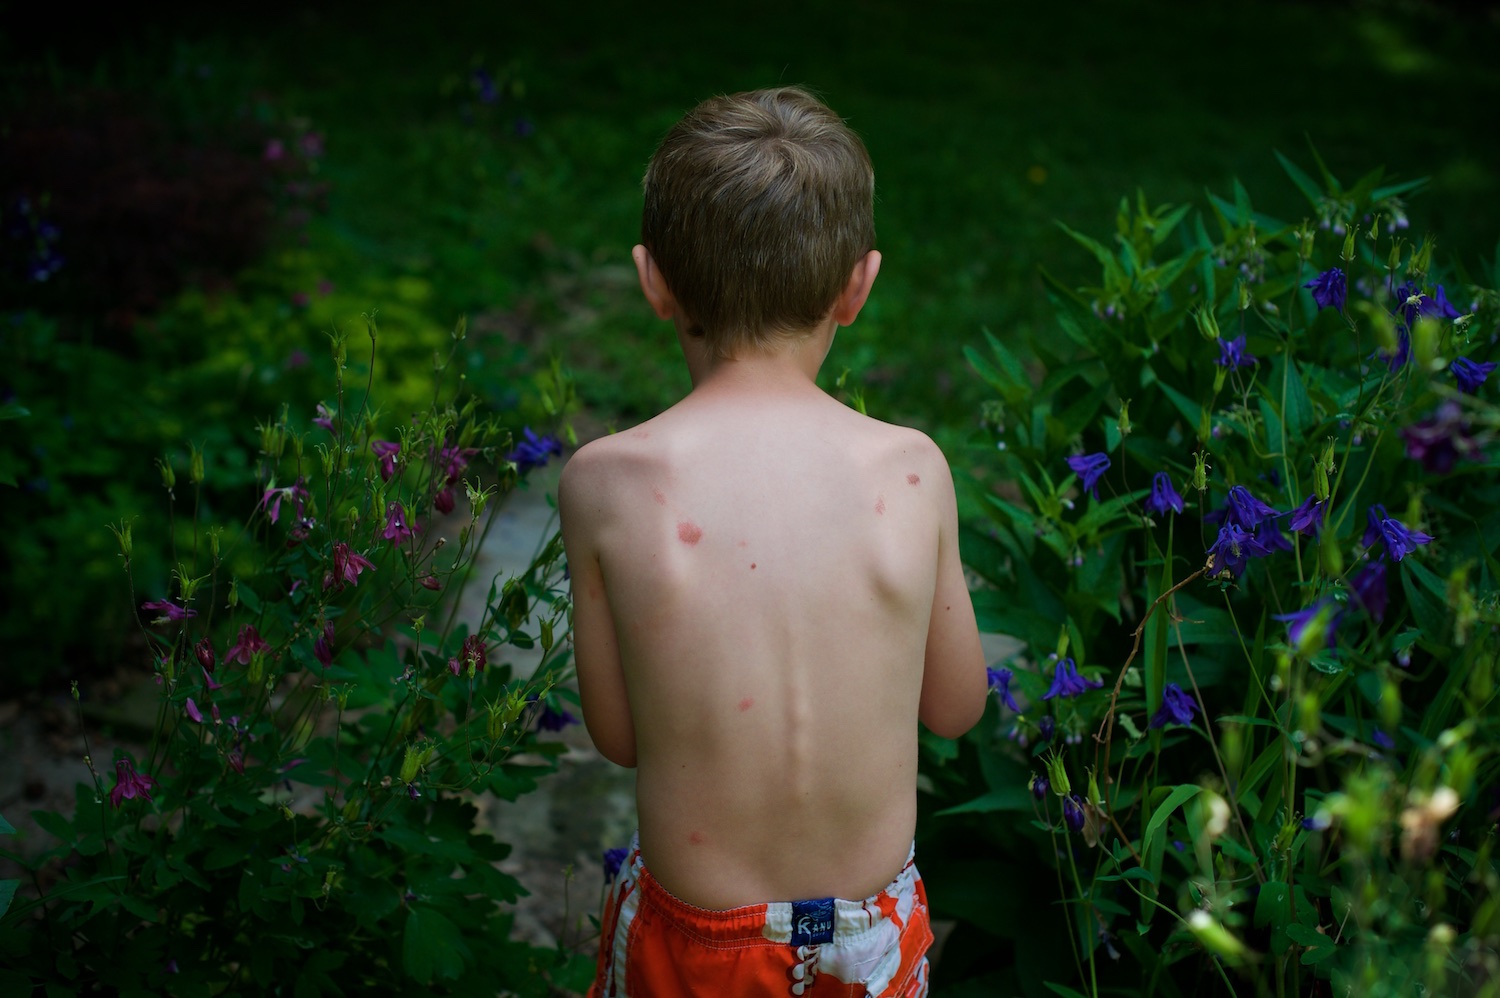 Bug Bites, Scrapes and Trampoline Burns